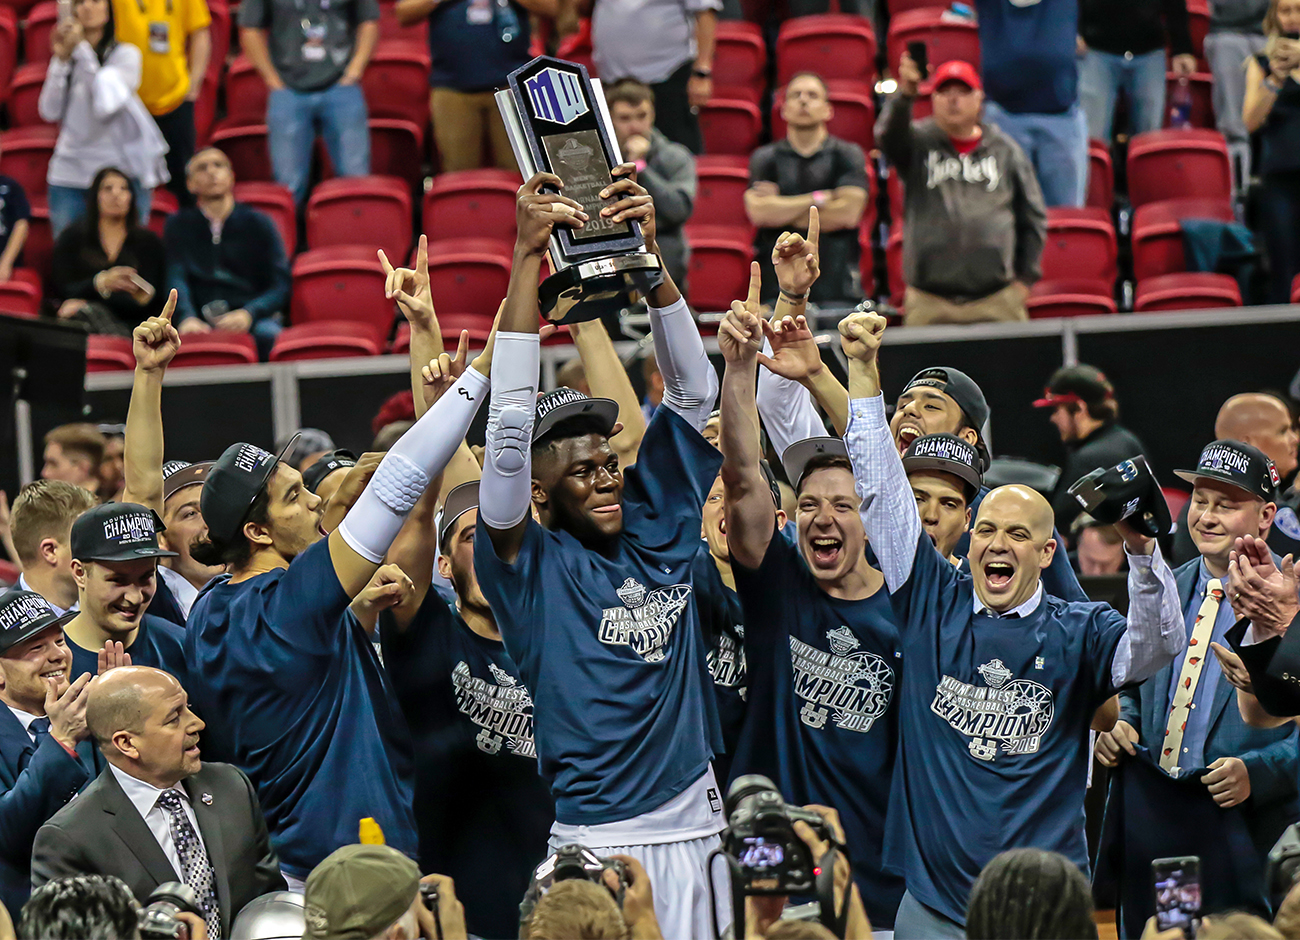 Team hoisting the Mountain West Championship Trophy